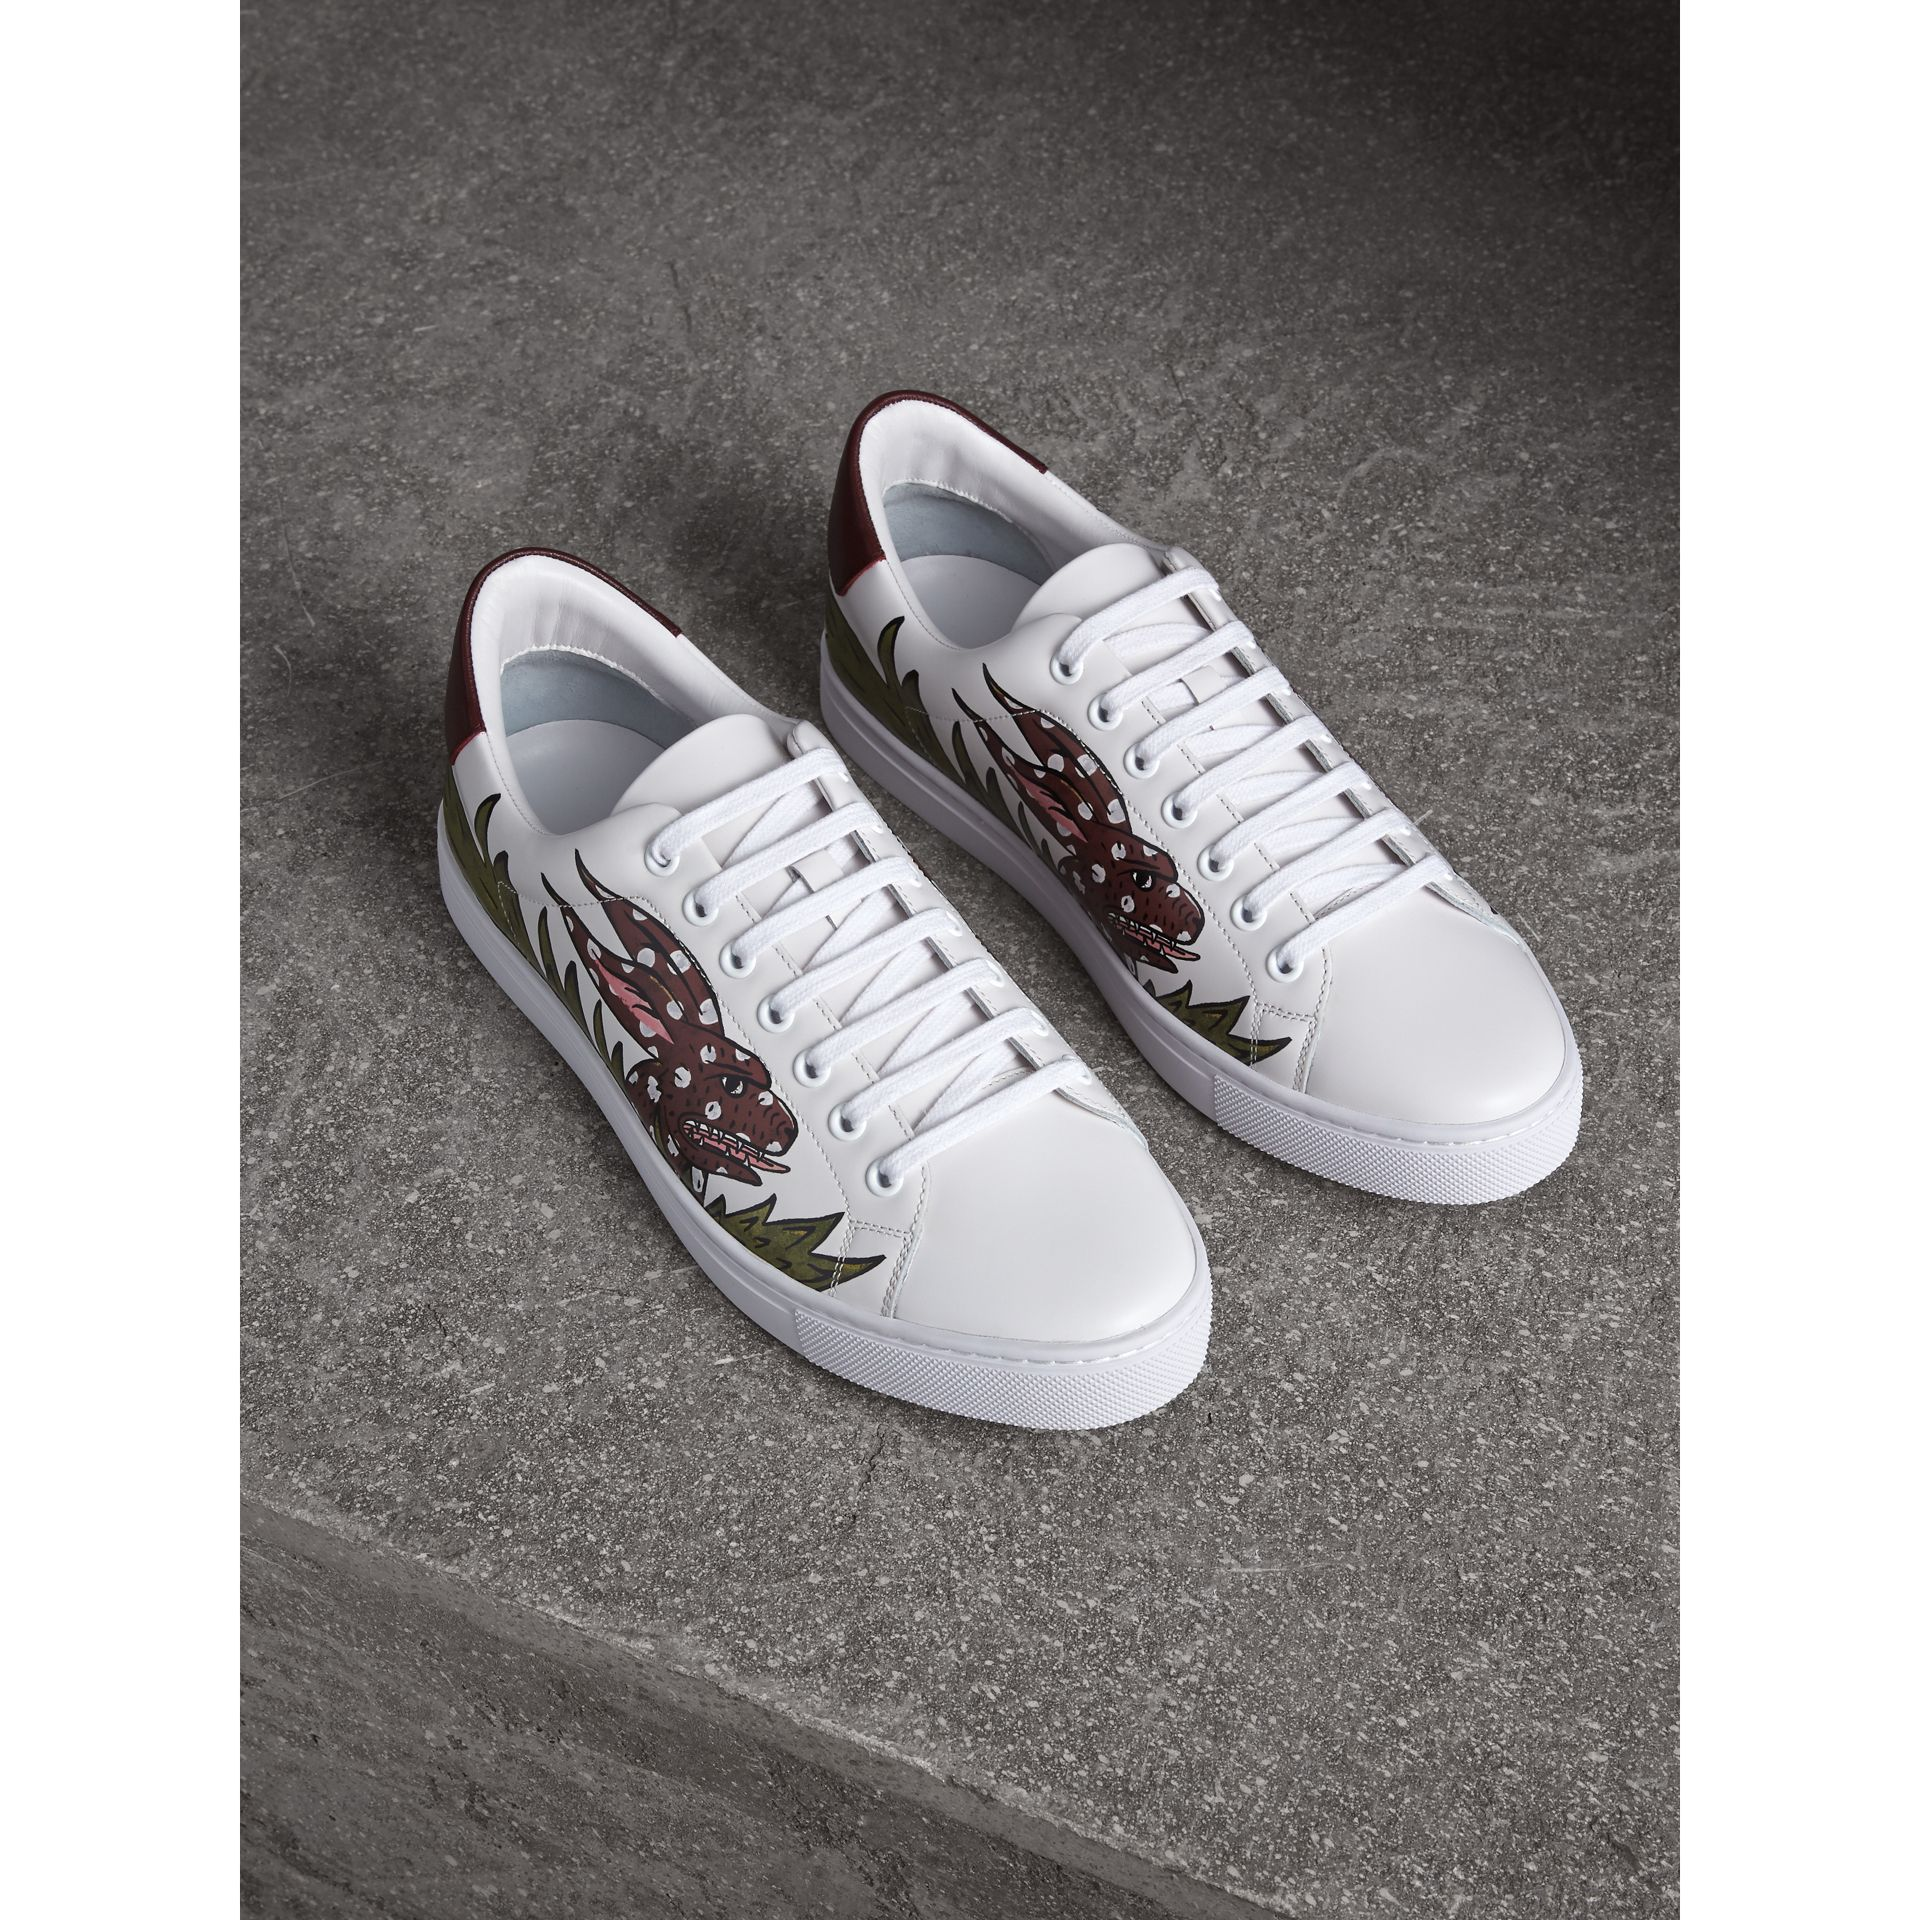 Beasts Print Leather Trainers by